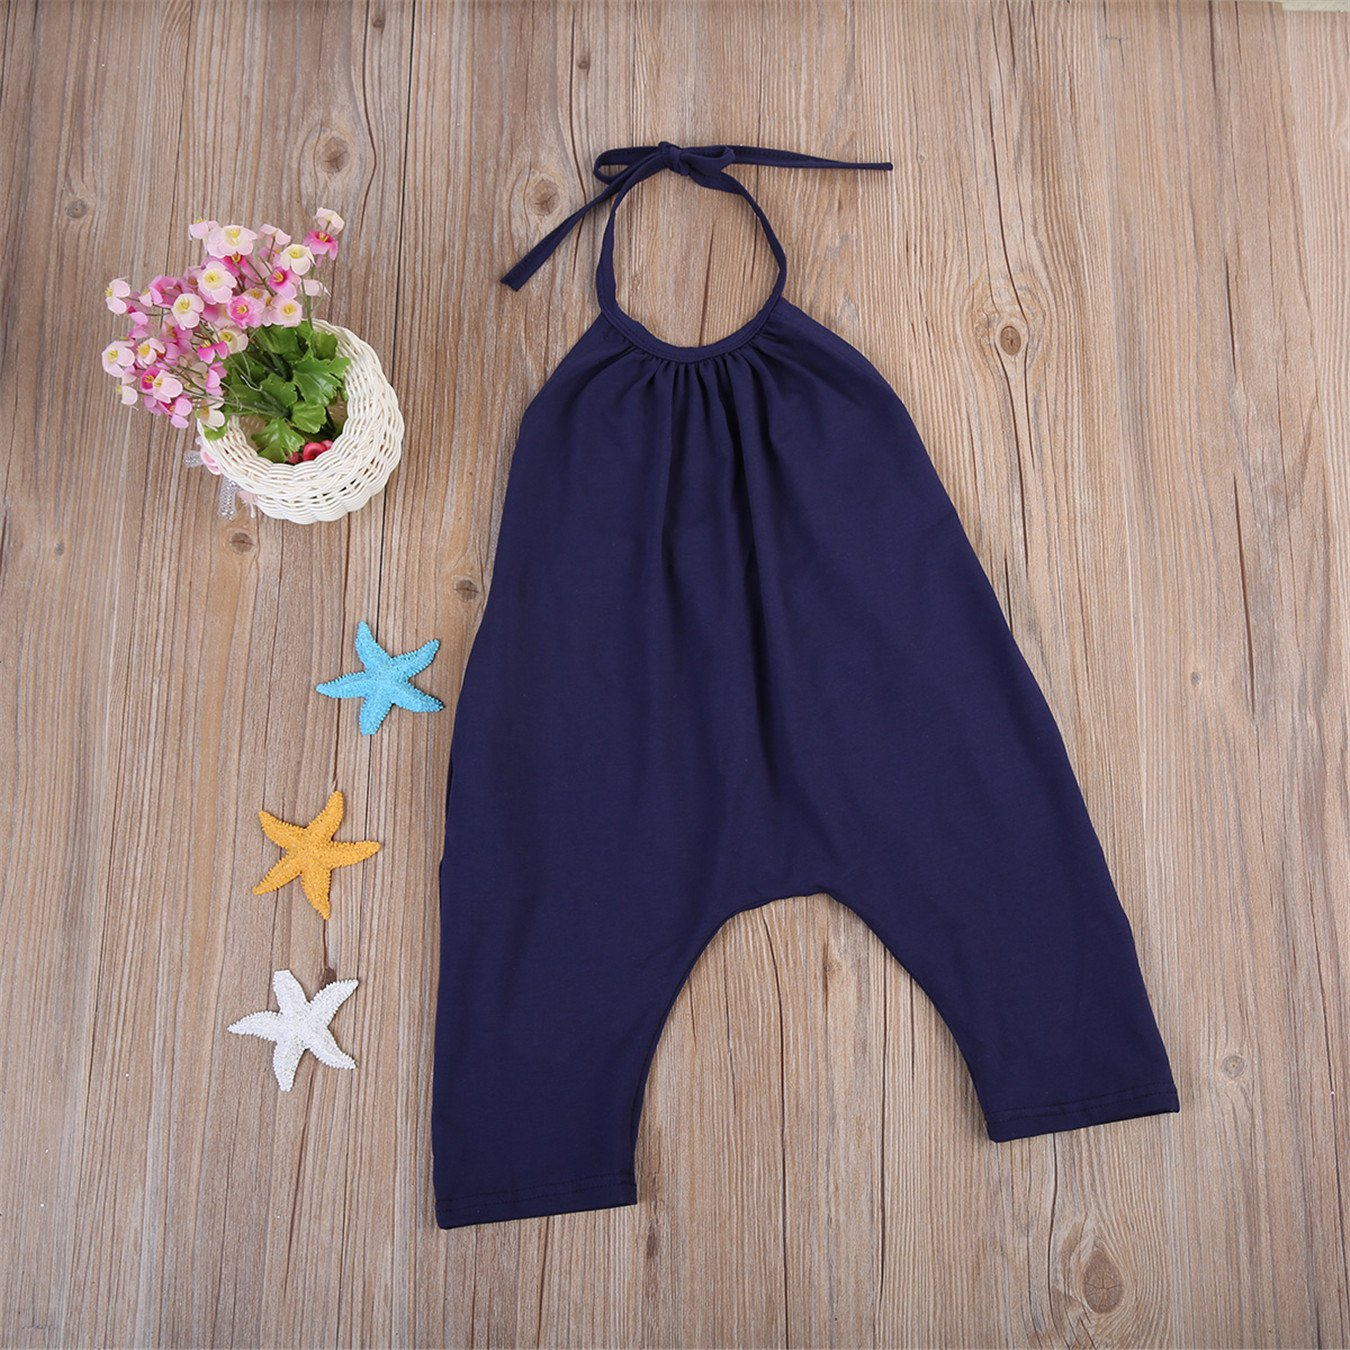 B Annie New Summer Kids Baby Girls Strap Cotton Romper Jumpsuit Harem Trousers Summer Clothes